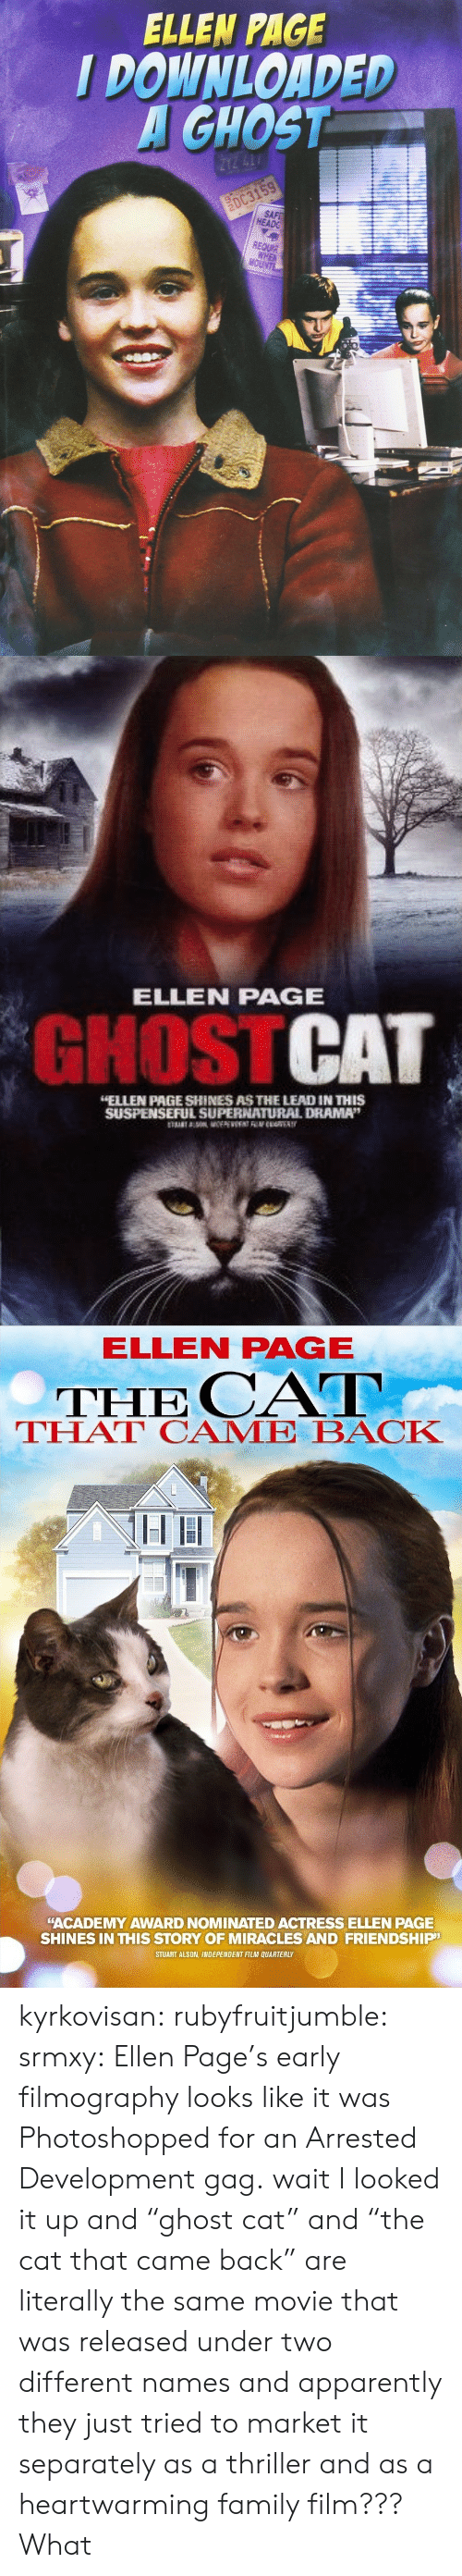 """Apparently, Family, and Thriller: ELLEN PAGE  I DOWNLOADED  GHOST  HEADG  REQUA  MO   ELLEN PAGE  GHOSTCAT  ELLEN PAGE SHINES AS THE LEAD IN THIS  SUSPENSEFUL SUPERNATUURAL DRAMA""""   ELLEN PAGE  THE CAT  THAT CAME BACK  """"ACADEMY AWARD NOMINATED ACTRESS ELLEN PAGE  SHINES IN THIS STORY OF MIRACLES AND FRIENDSHIP  STUART ALSON, INDEPENDENT FILM QUARTERLY kyrkovisan:  rubyfruitjumble:   srmxy:  Ellen Page's early filmography looks like it was Photoshopped for an Arrested Development gag.  wait I looked it up and """"ghost cat"""" and """"the cat that came back"""" are literally the same movie that was released under two different names and apparently they just tried to market it separately as a thriller and as a heartwarming family film???   What"""